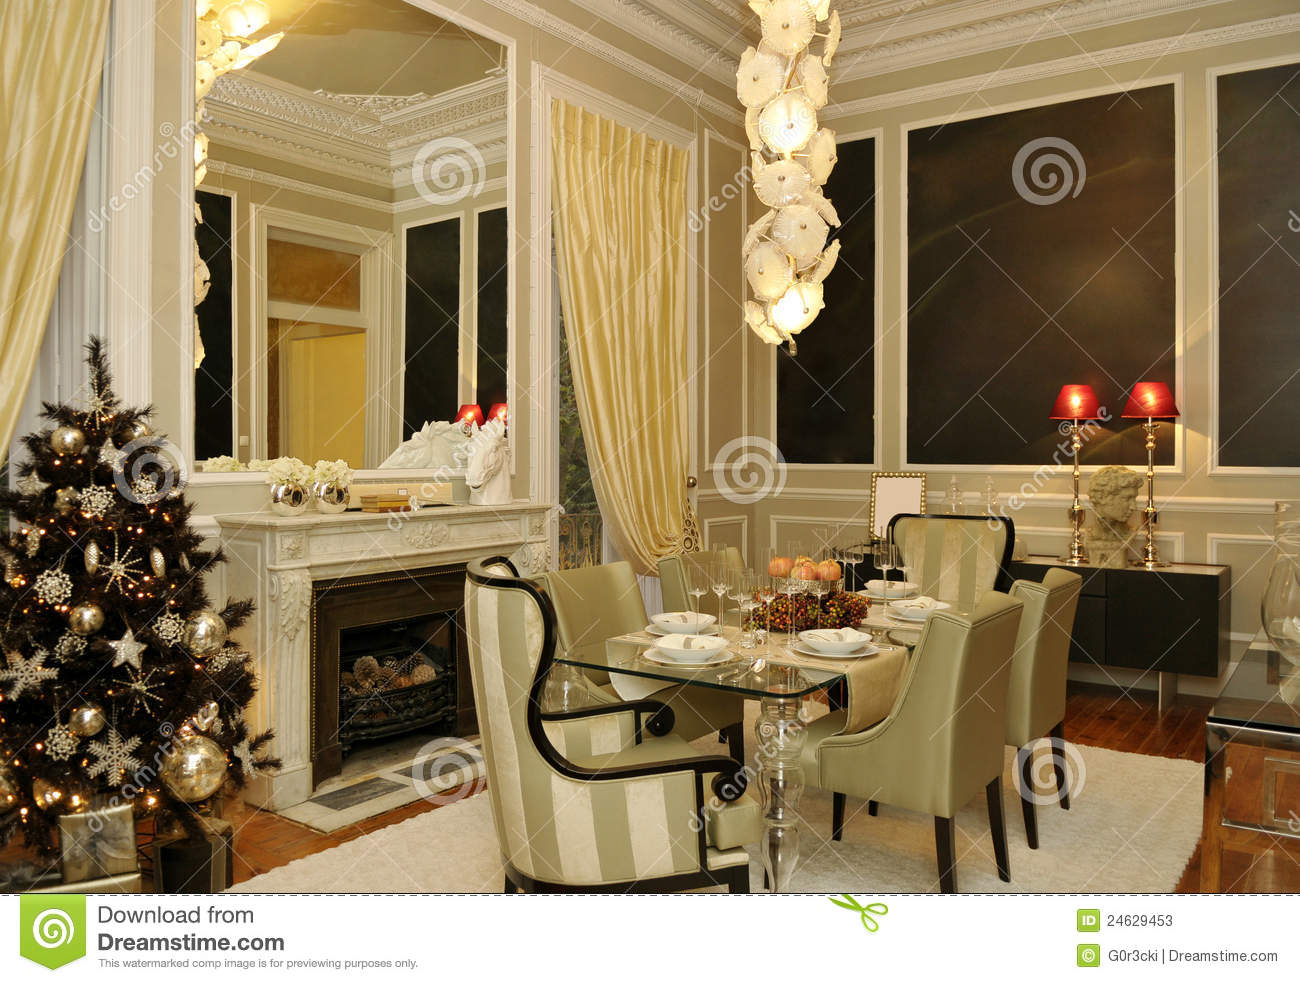 Dining Room with Golden Christmas Tree, Classic Decoration